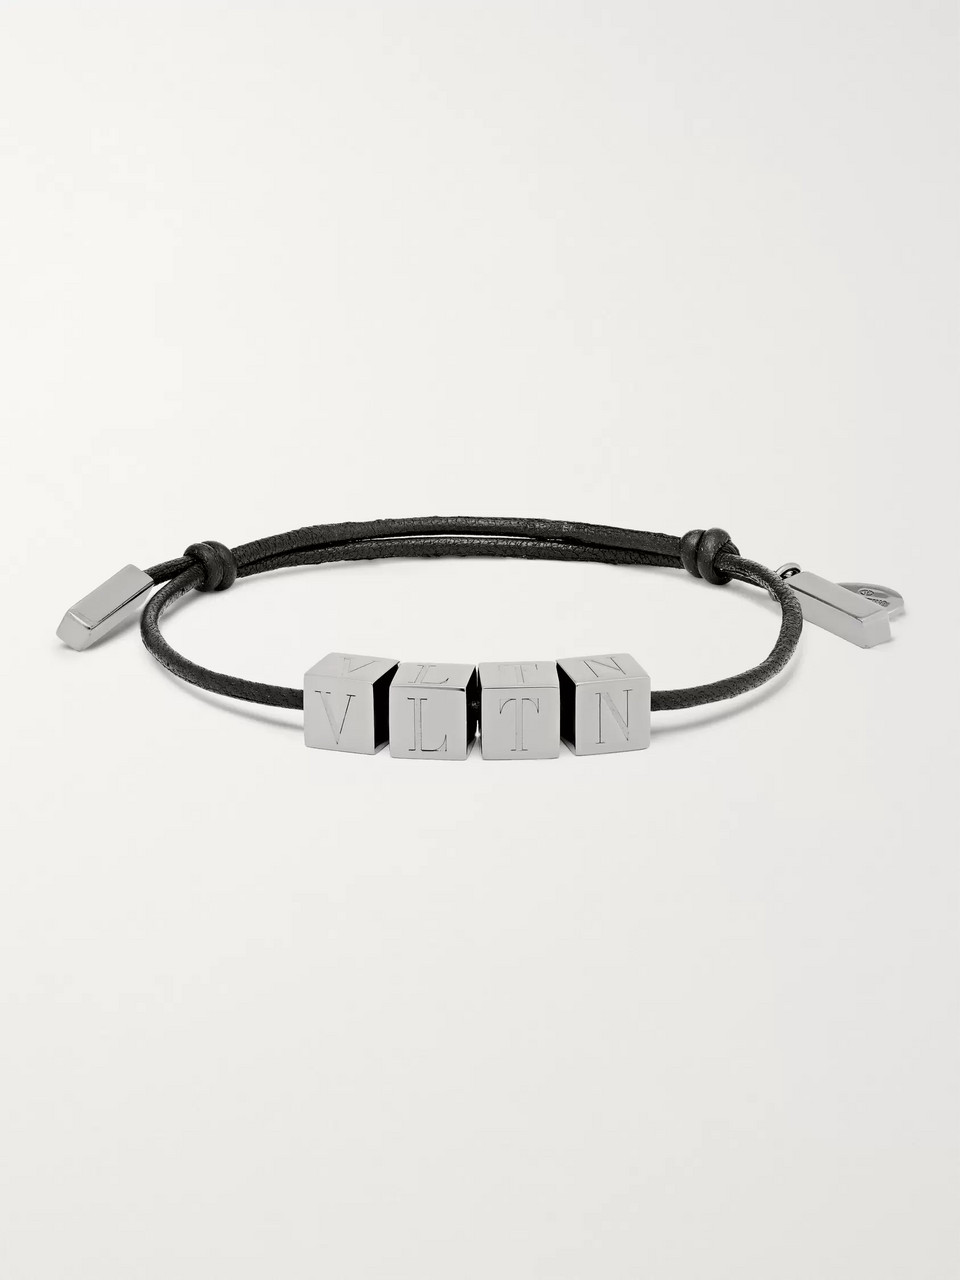 Valentino Valentino Garavani Logo-Engraved Ruthenium and Leather Bracelet